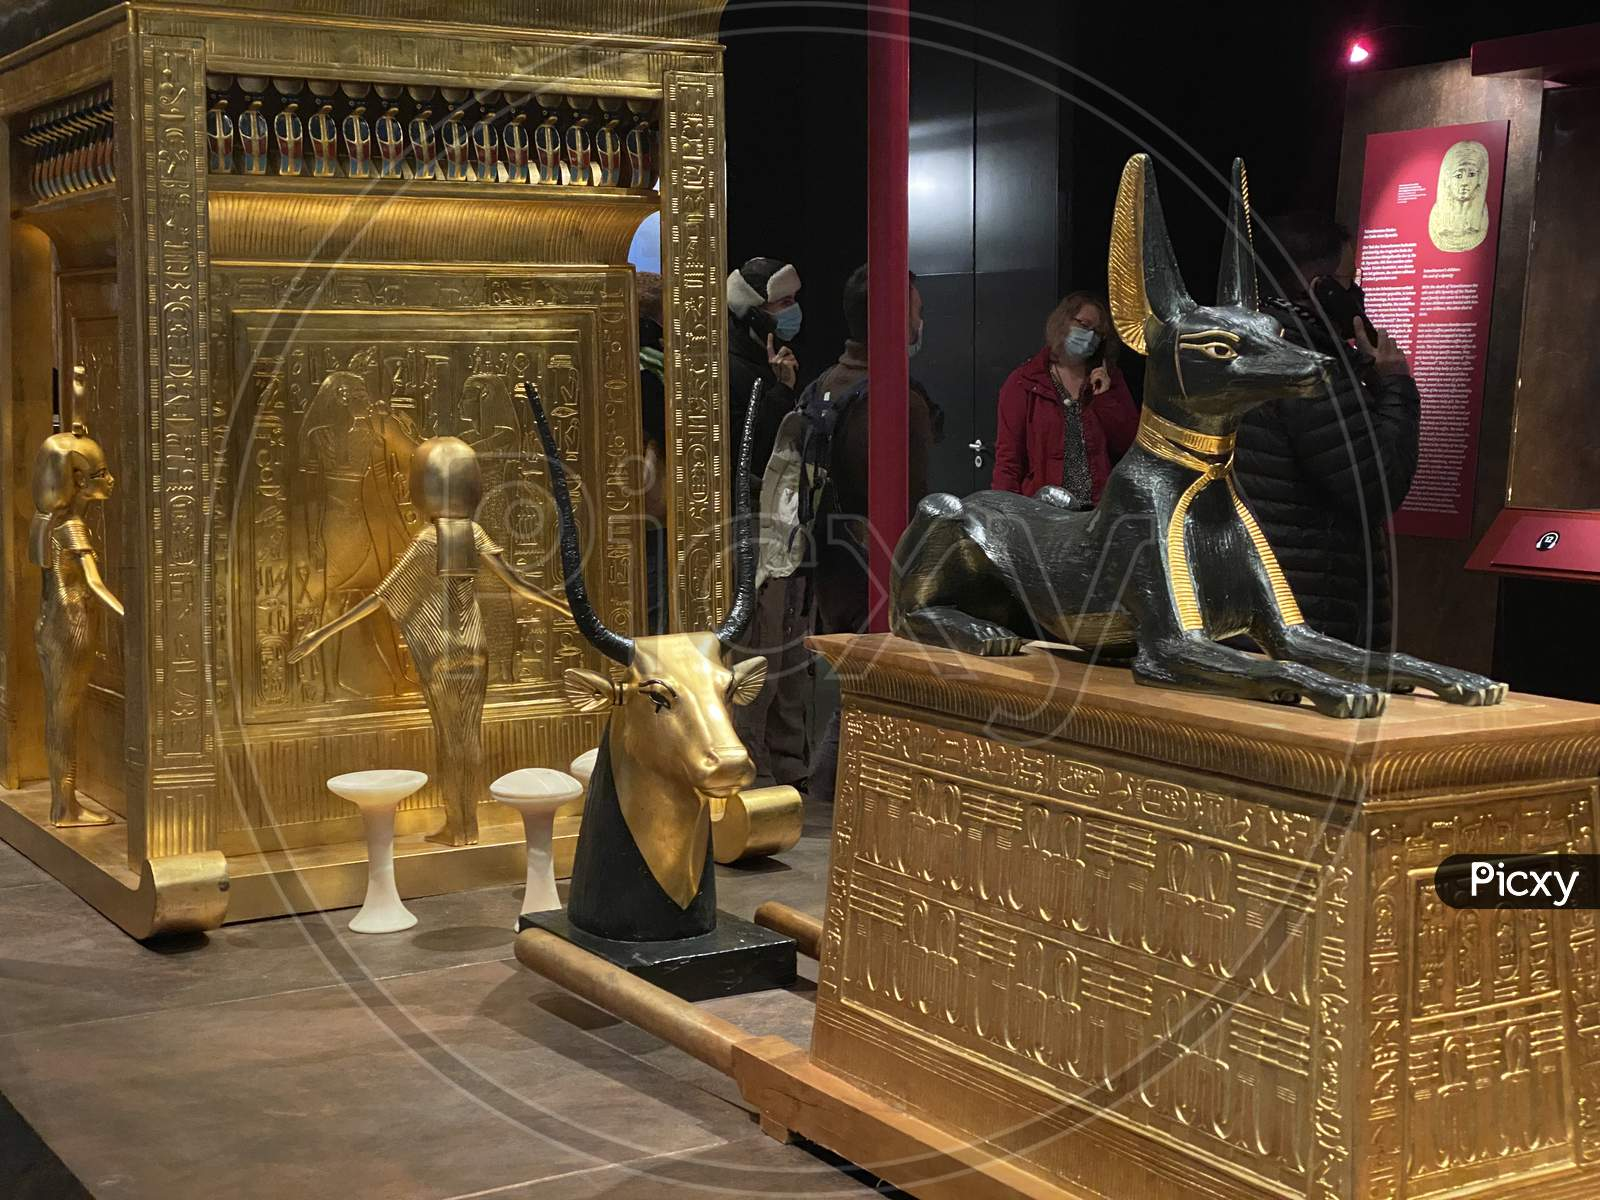 Tomb And Treasures With Golden Cow And Black Anubis As Replicas From Egypt Pharaoh Tutankhamun. 14.03.2021 - Oerlikon, Switzerland.